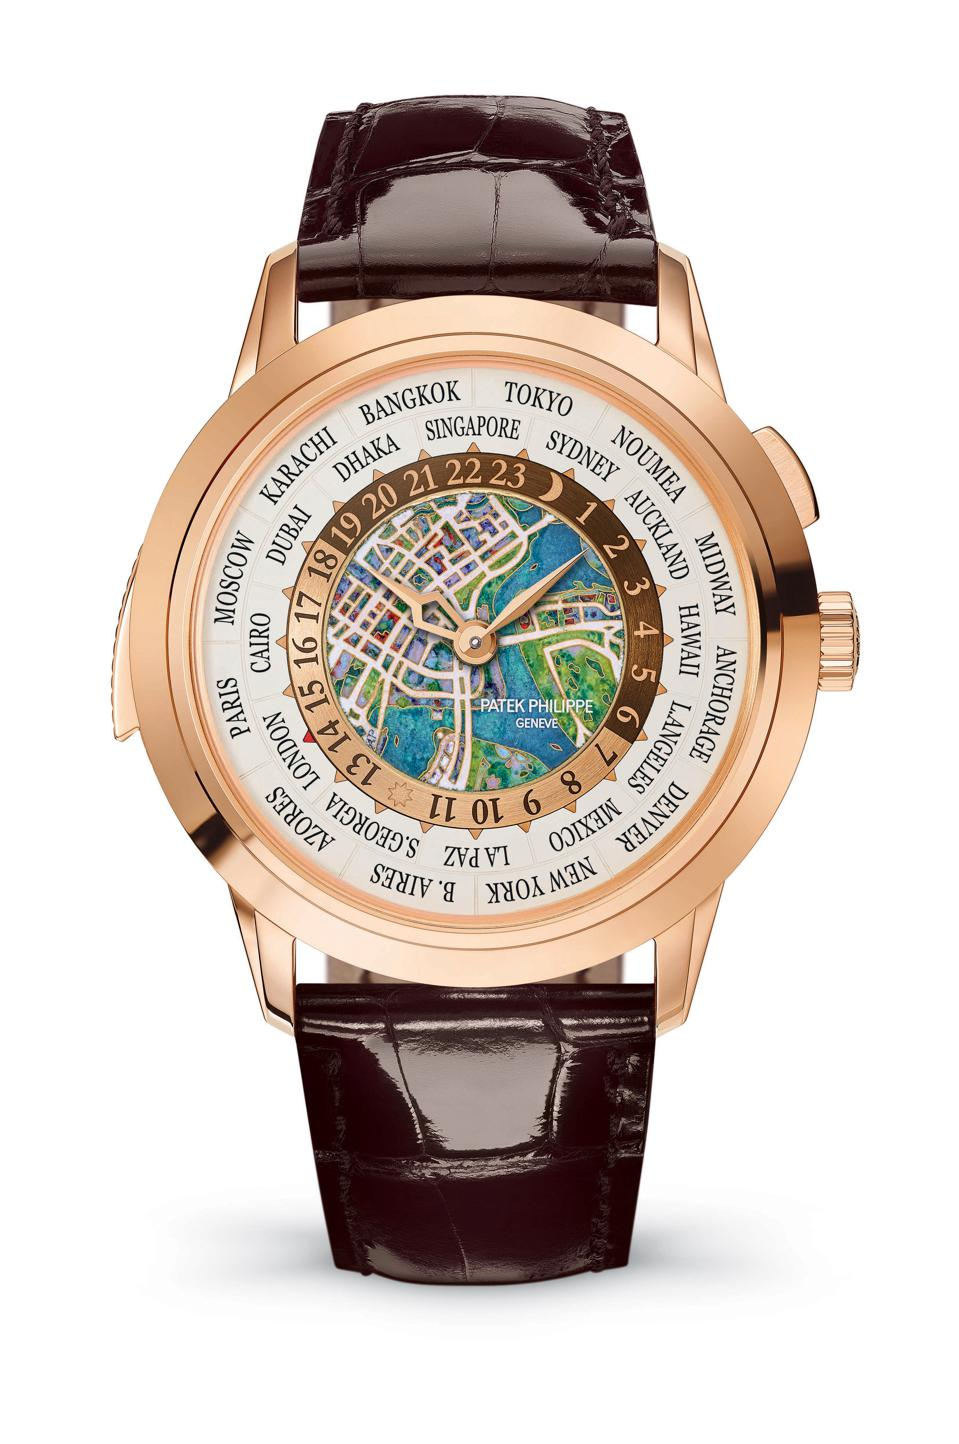 5531 World Time Minute Repeater